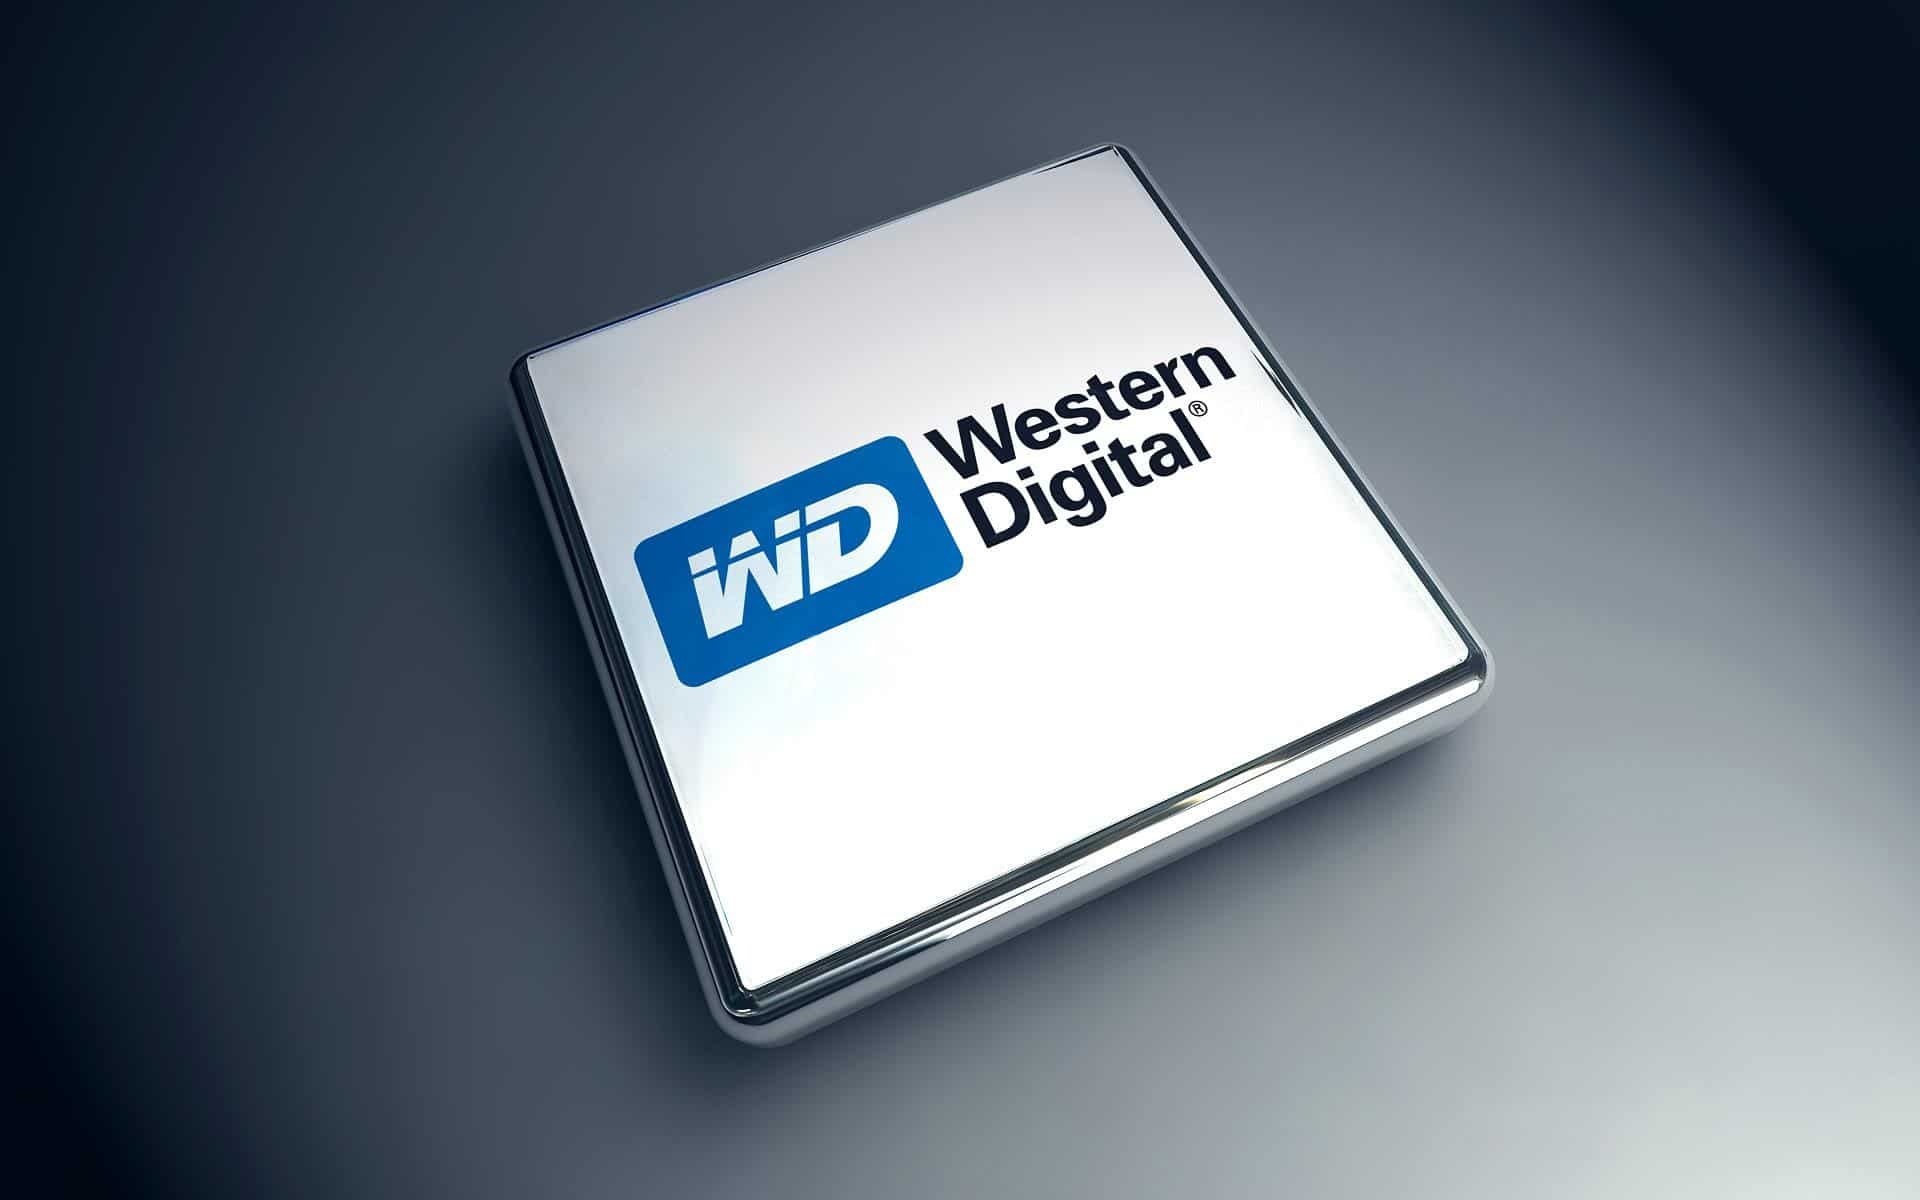 Western Digital Corp (NASDAQ:WDC) Enter A Joint Genomics Sequencing Research And Development Agreement With Baskin School Of Engineering And UC Santa Cruz Institute